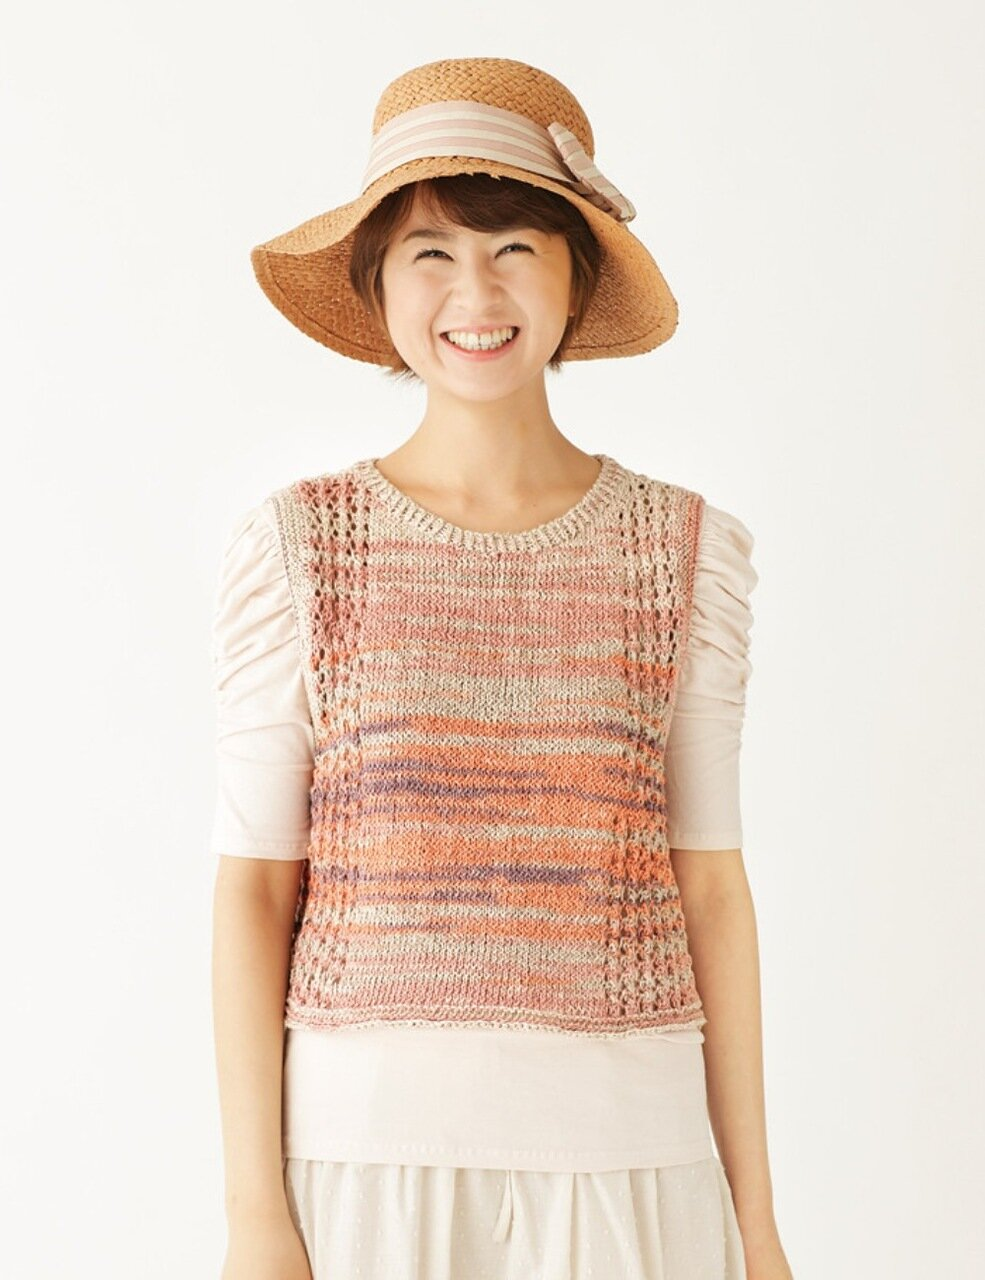 Knit Anger №3 2012 Summer